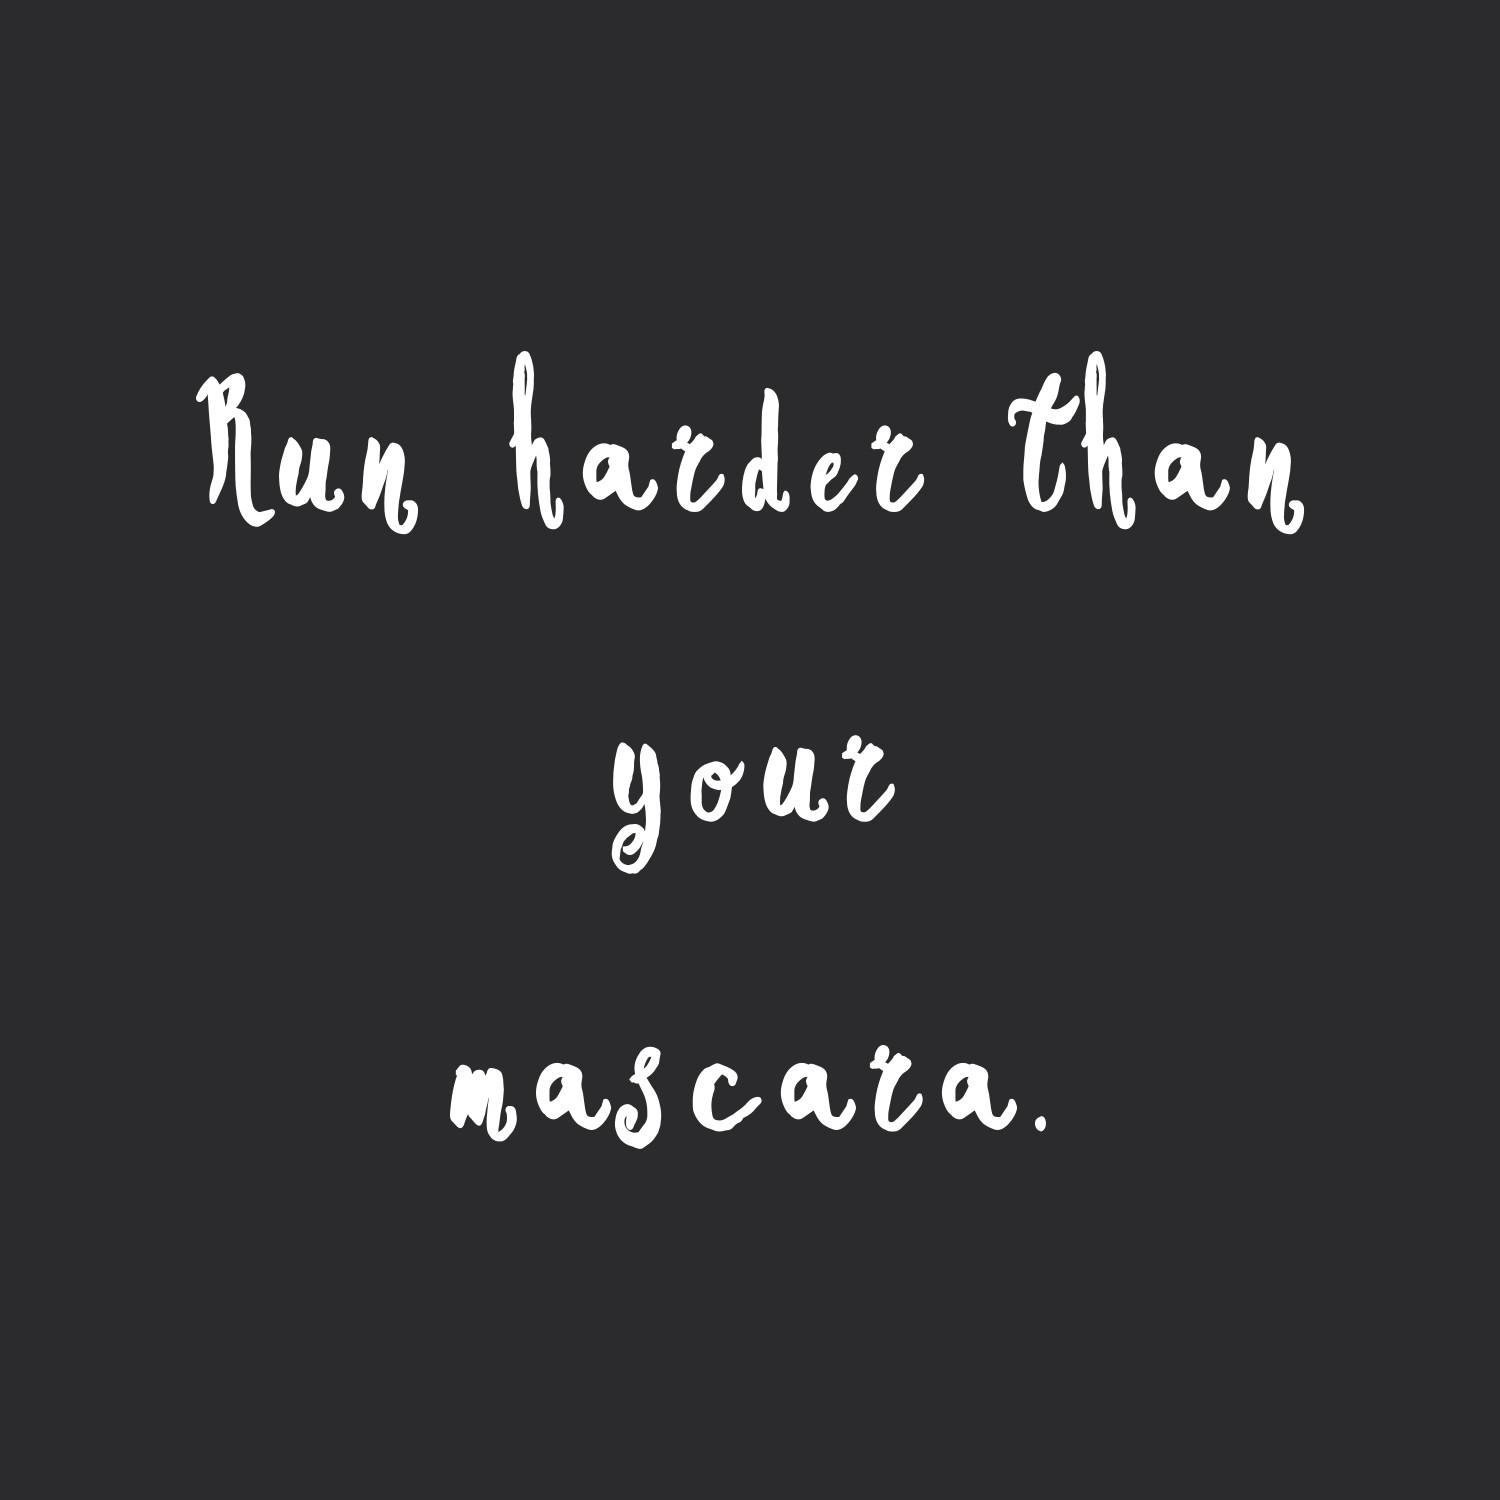 Mascara Quotes Run Harder Than Your Mascara  Fitness And Weight Loss Motivation